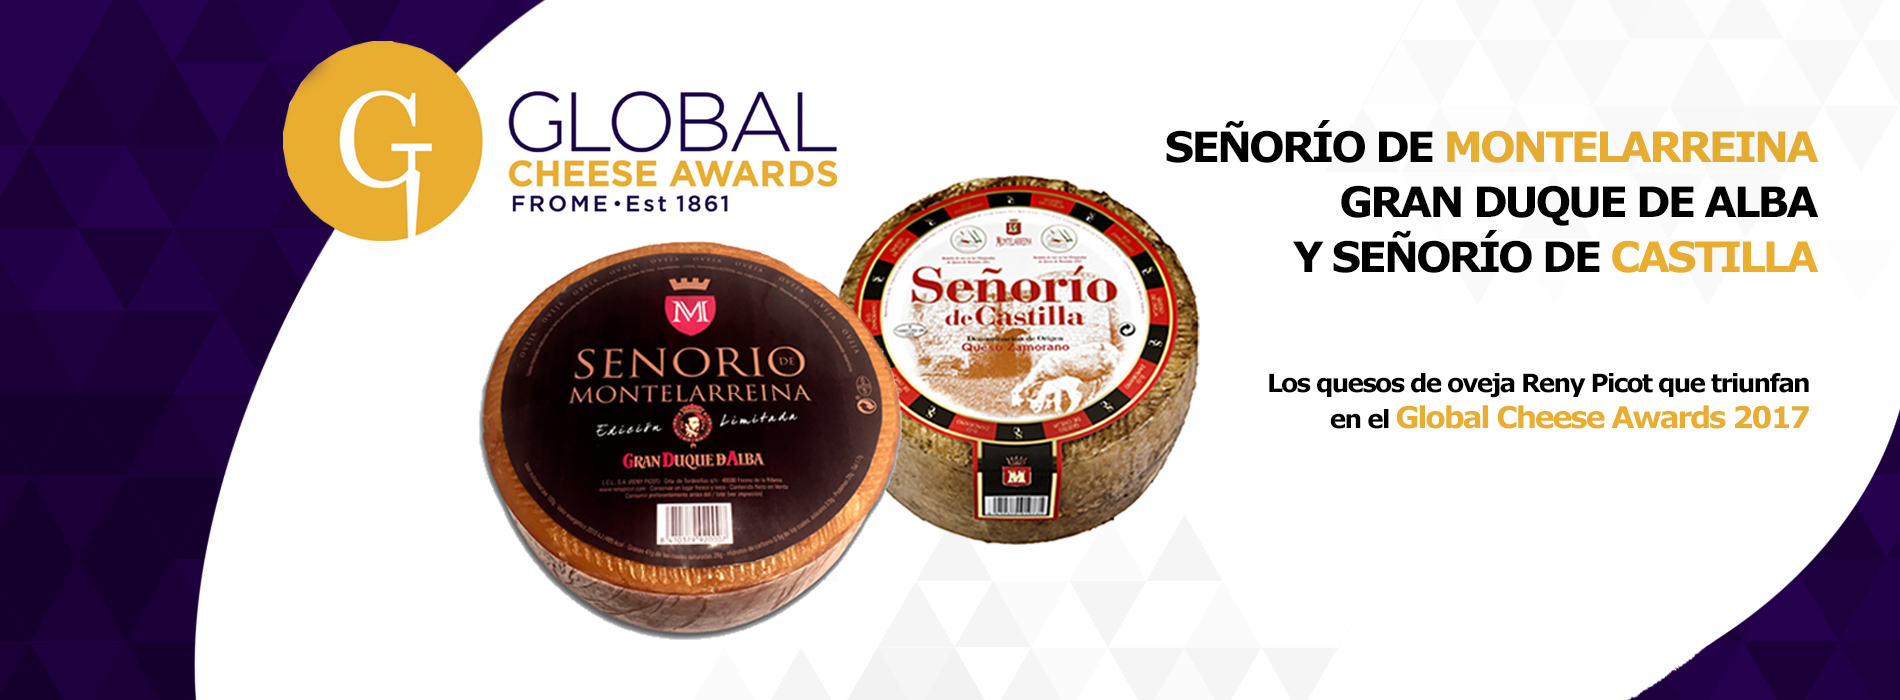 Global-Cheese-Awards-septiembre-2017